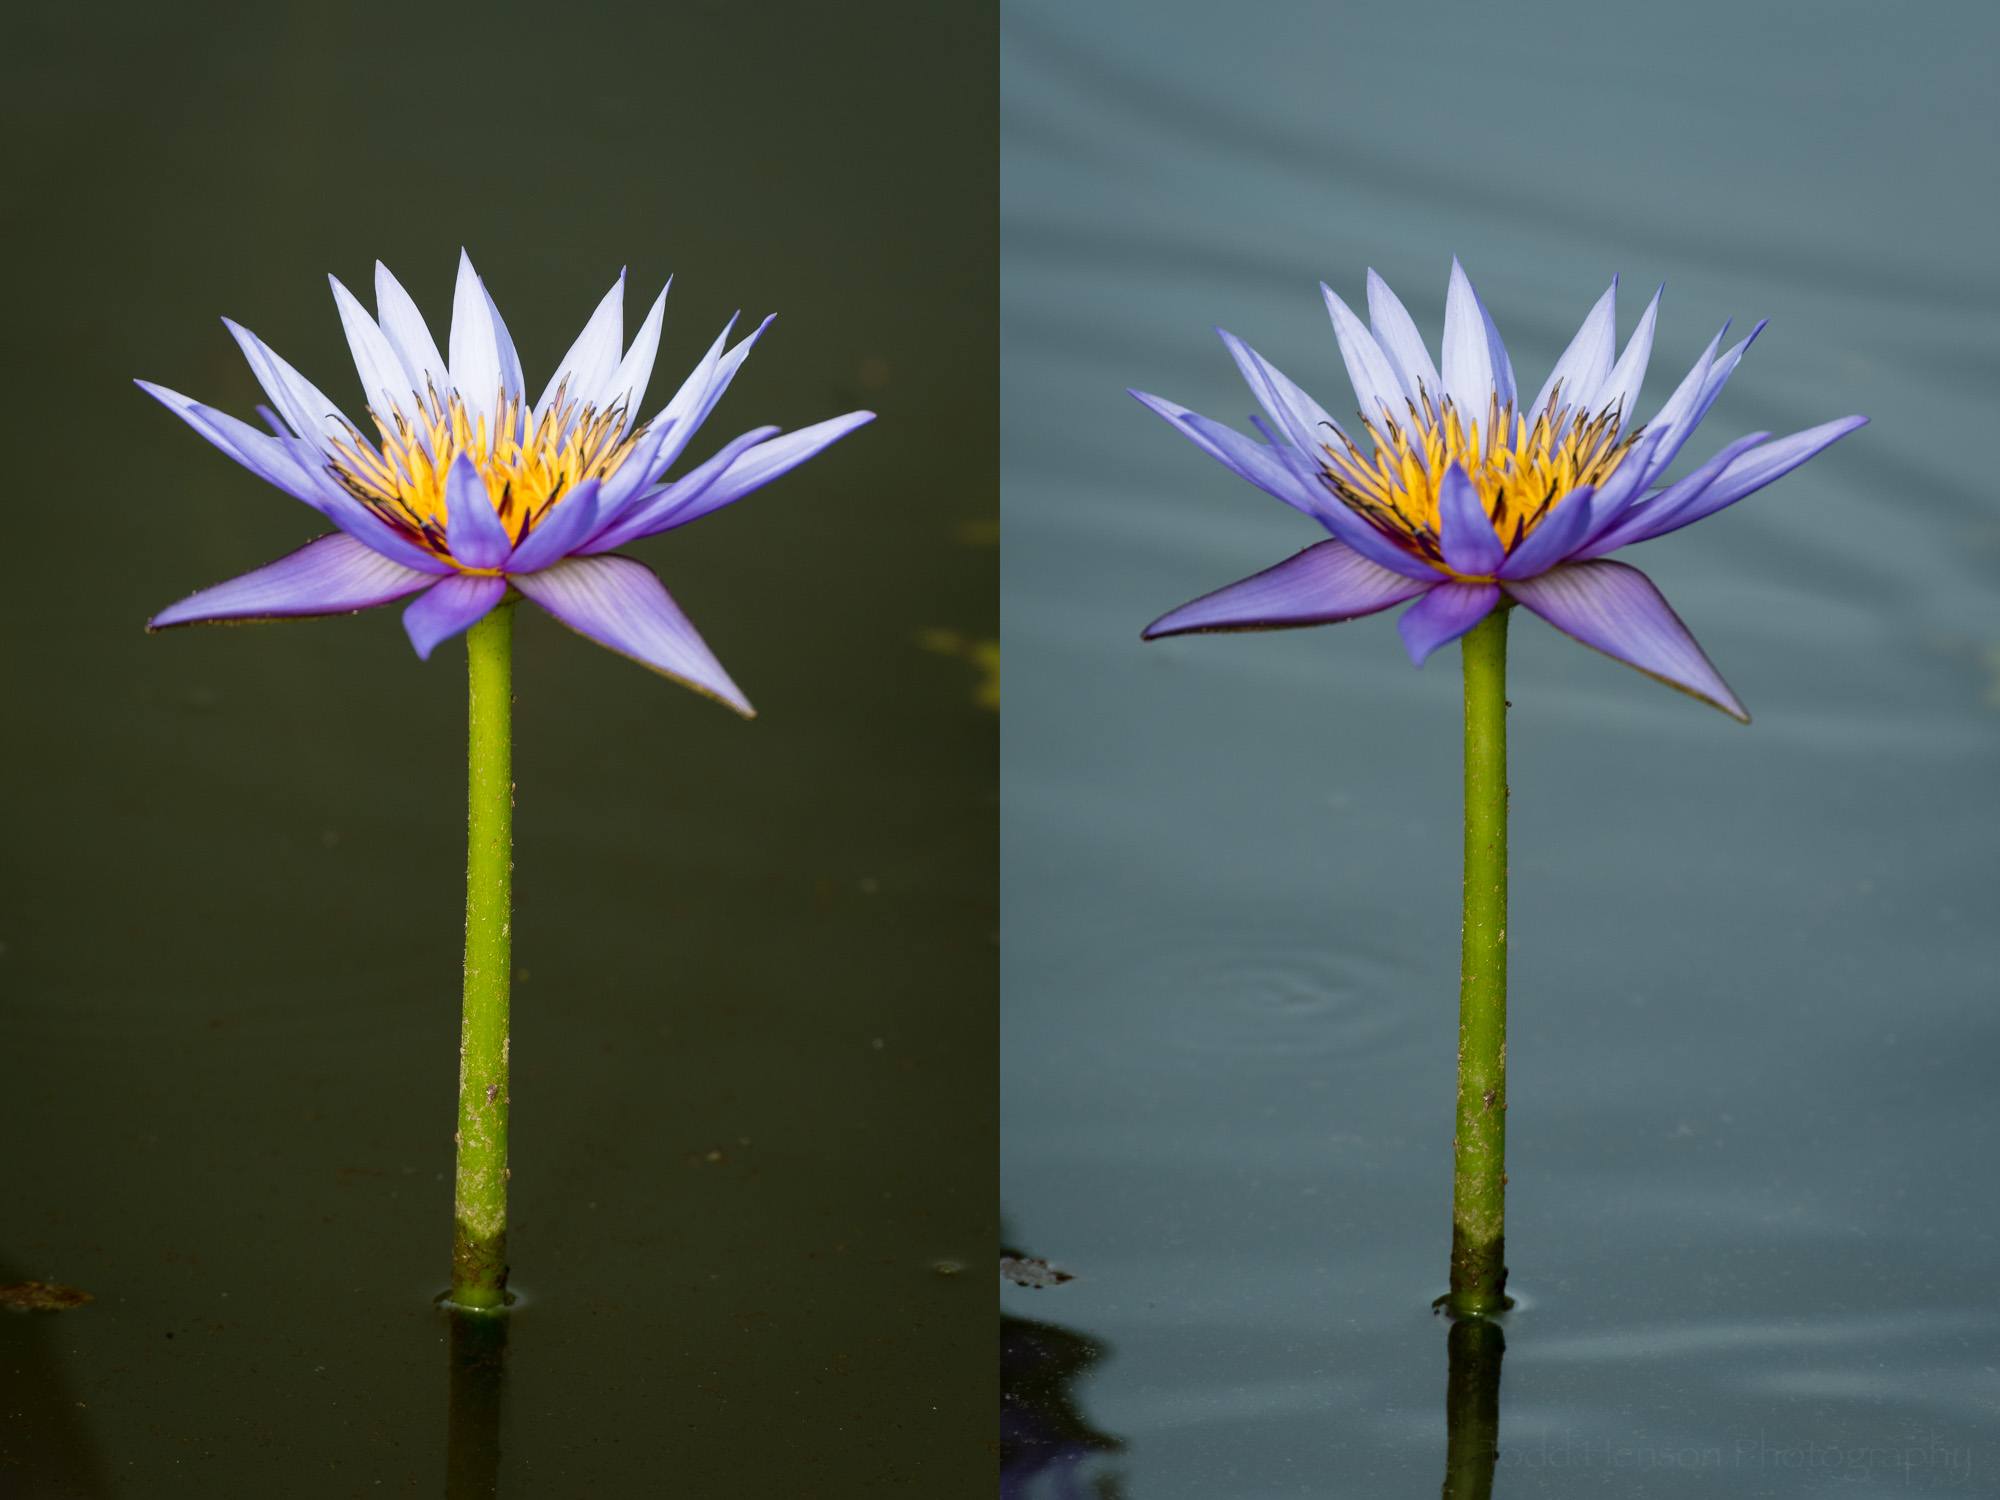 Purple water lily. Left: maximum effect from polarizing filter. Right: minimum effect from polarizing filter.